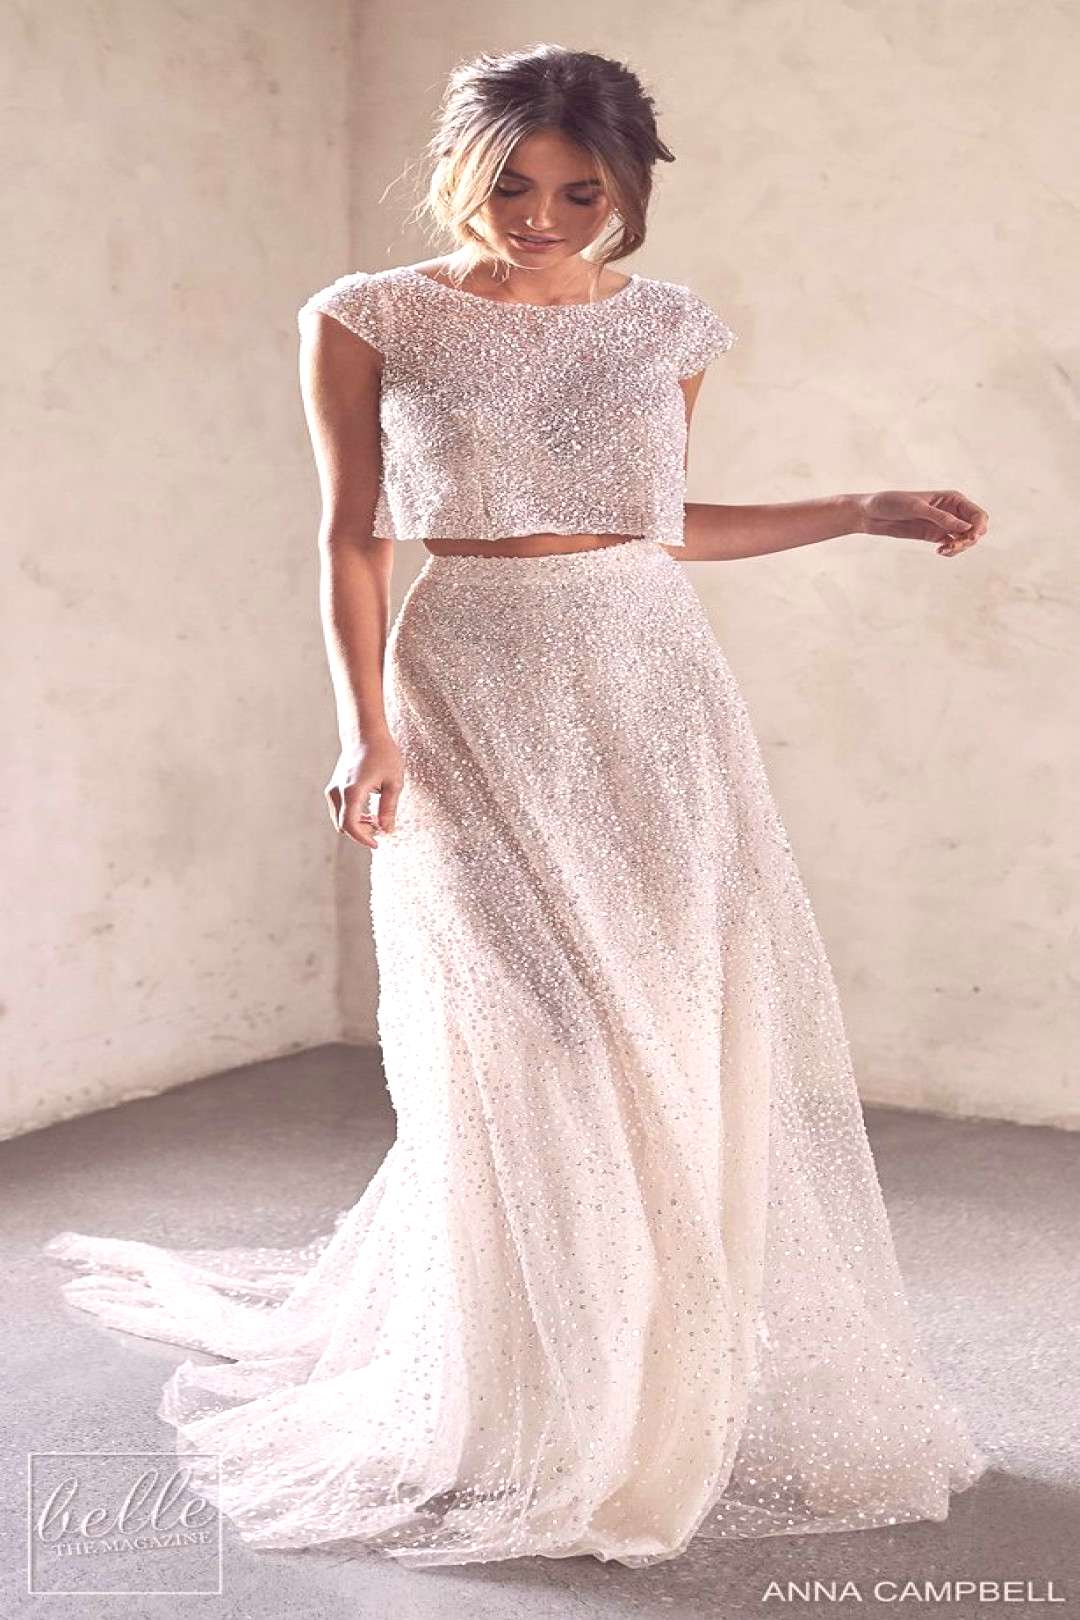 Anna Campbell 2020 Wedding Dress Lumiére Bridal Collection - Meadow Topper with Riley Separate Sk